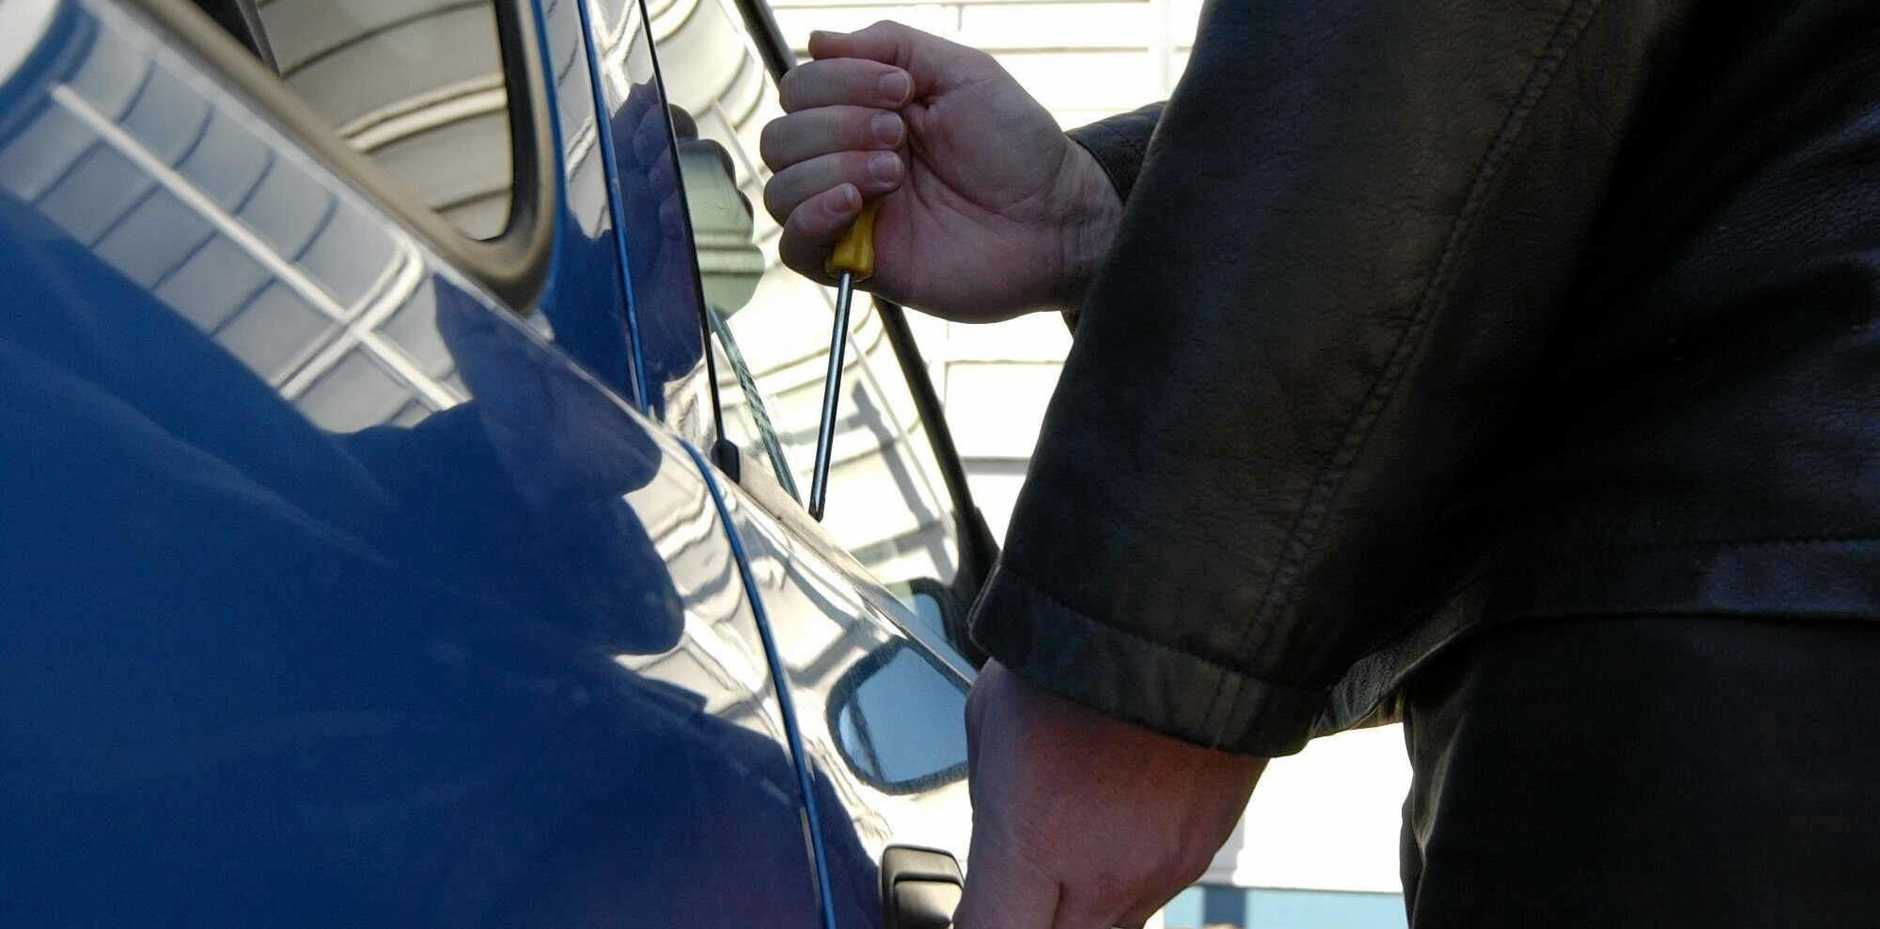 Since July 1, Gympie police have had 18 reports of offenders stealing from vehicles, some overnight but some in broad daylight.